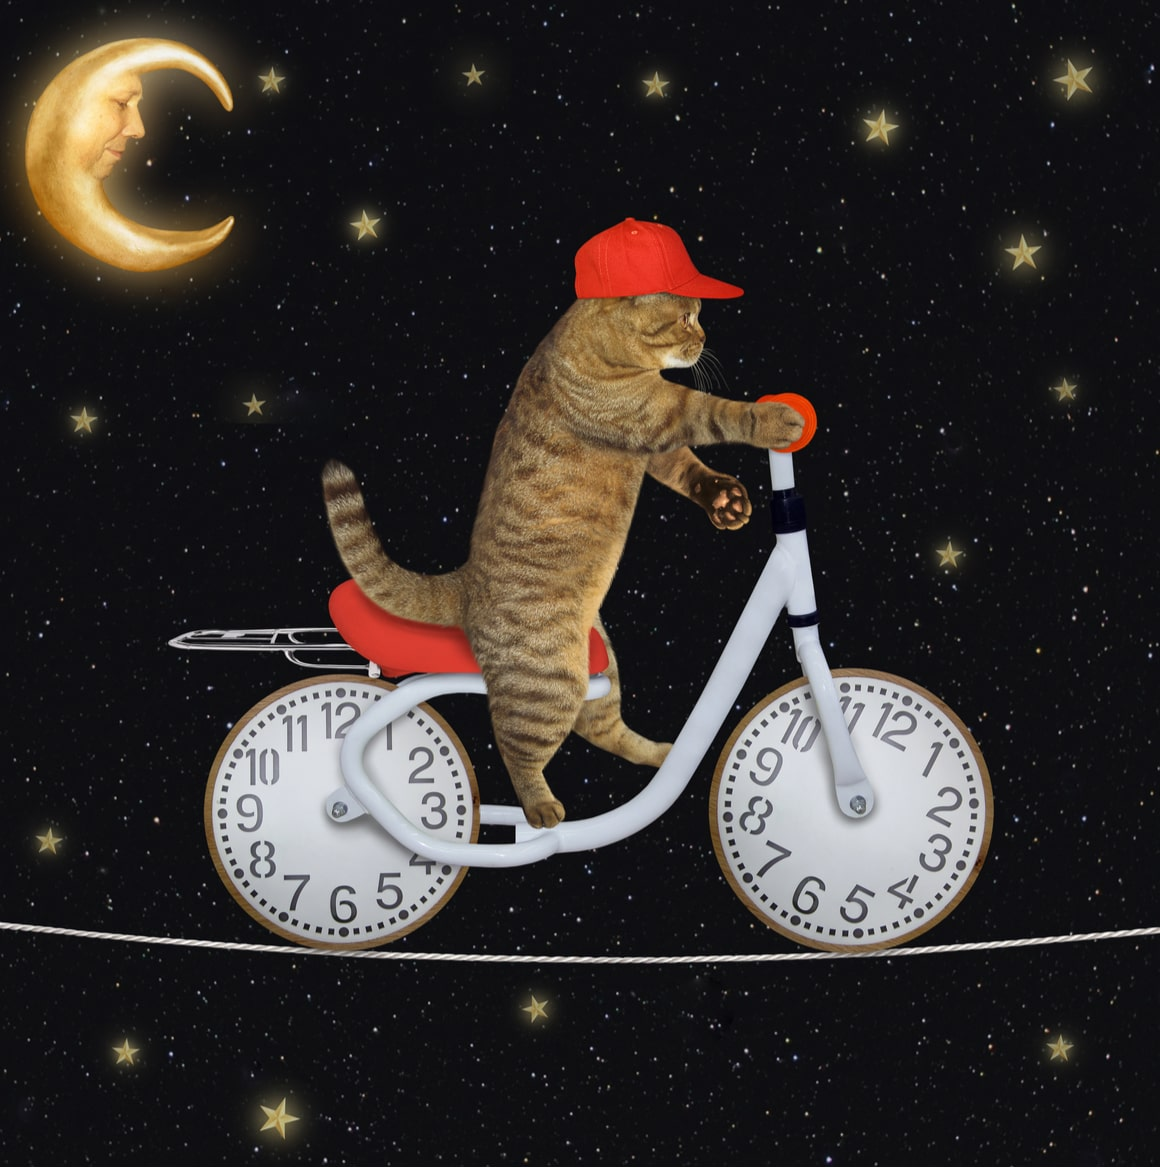 A cat rides a bicycle through the milky way cartoon.